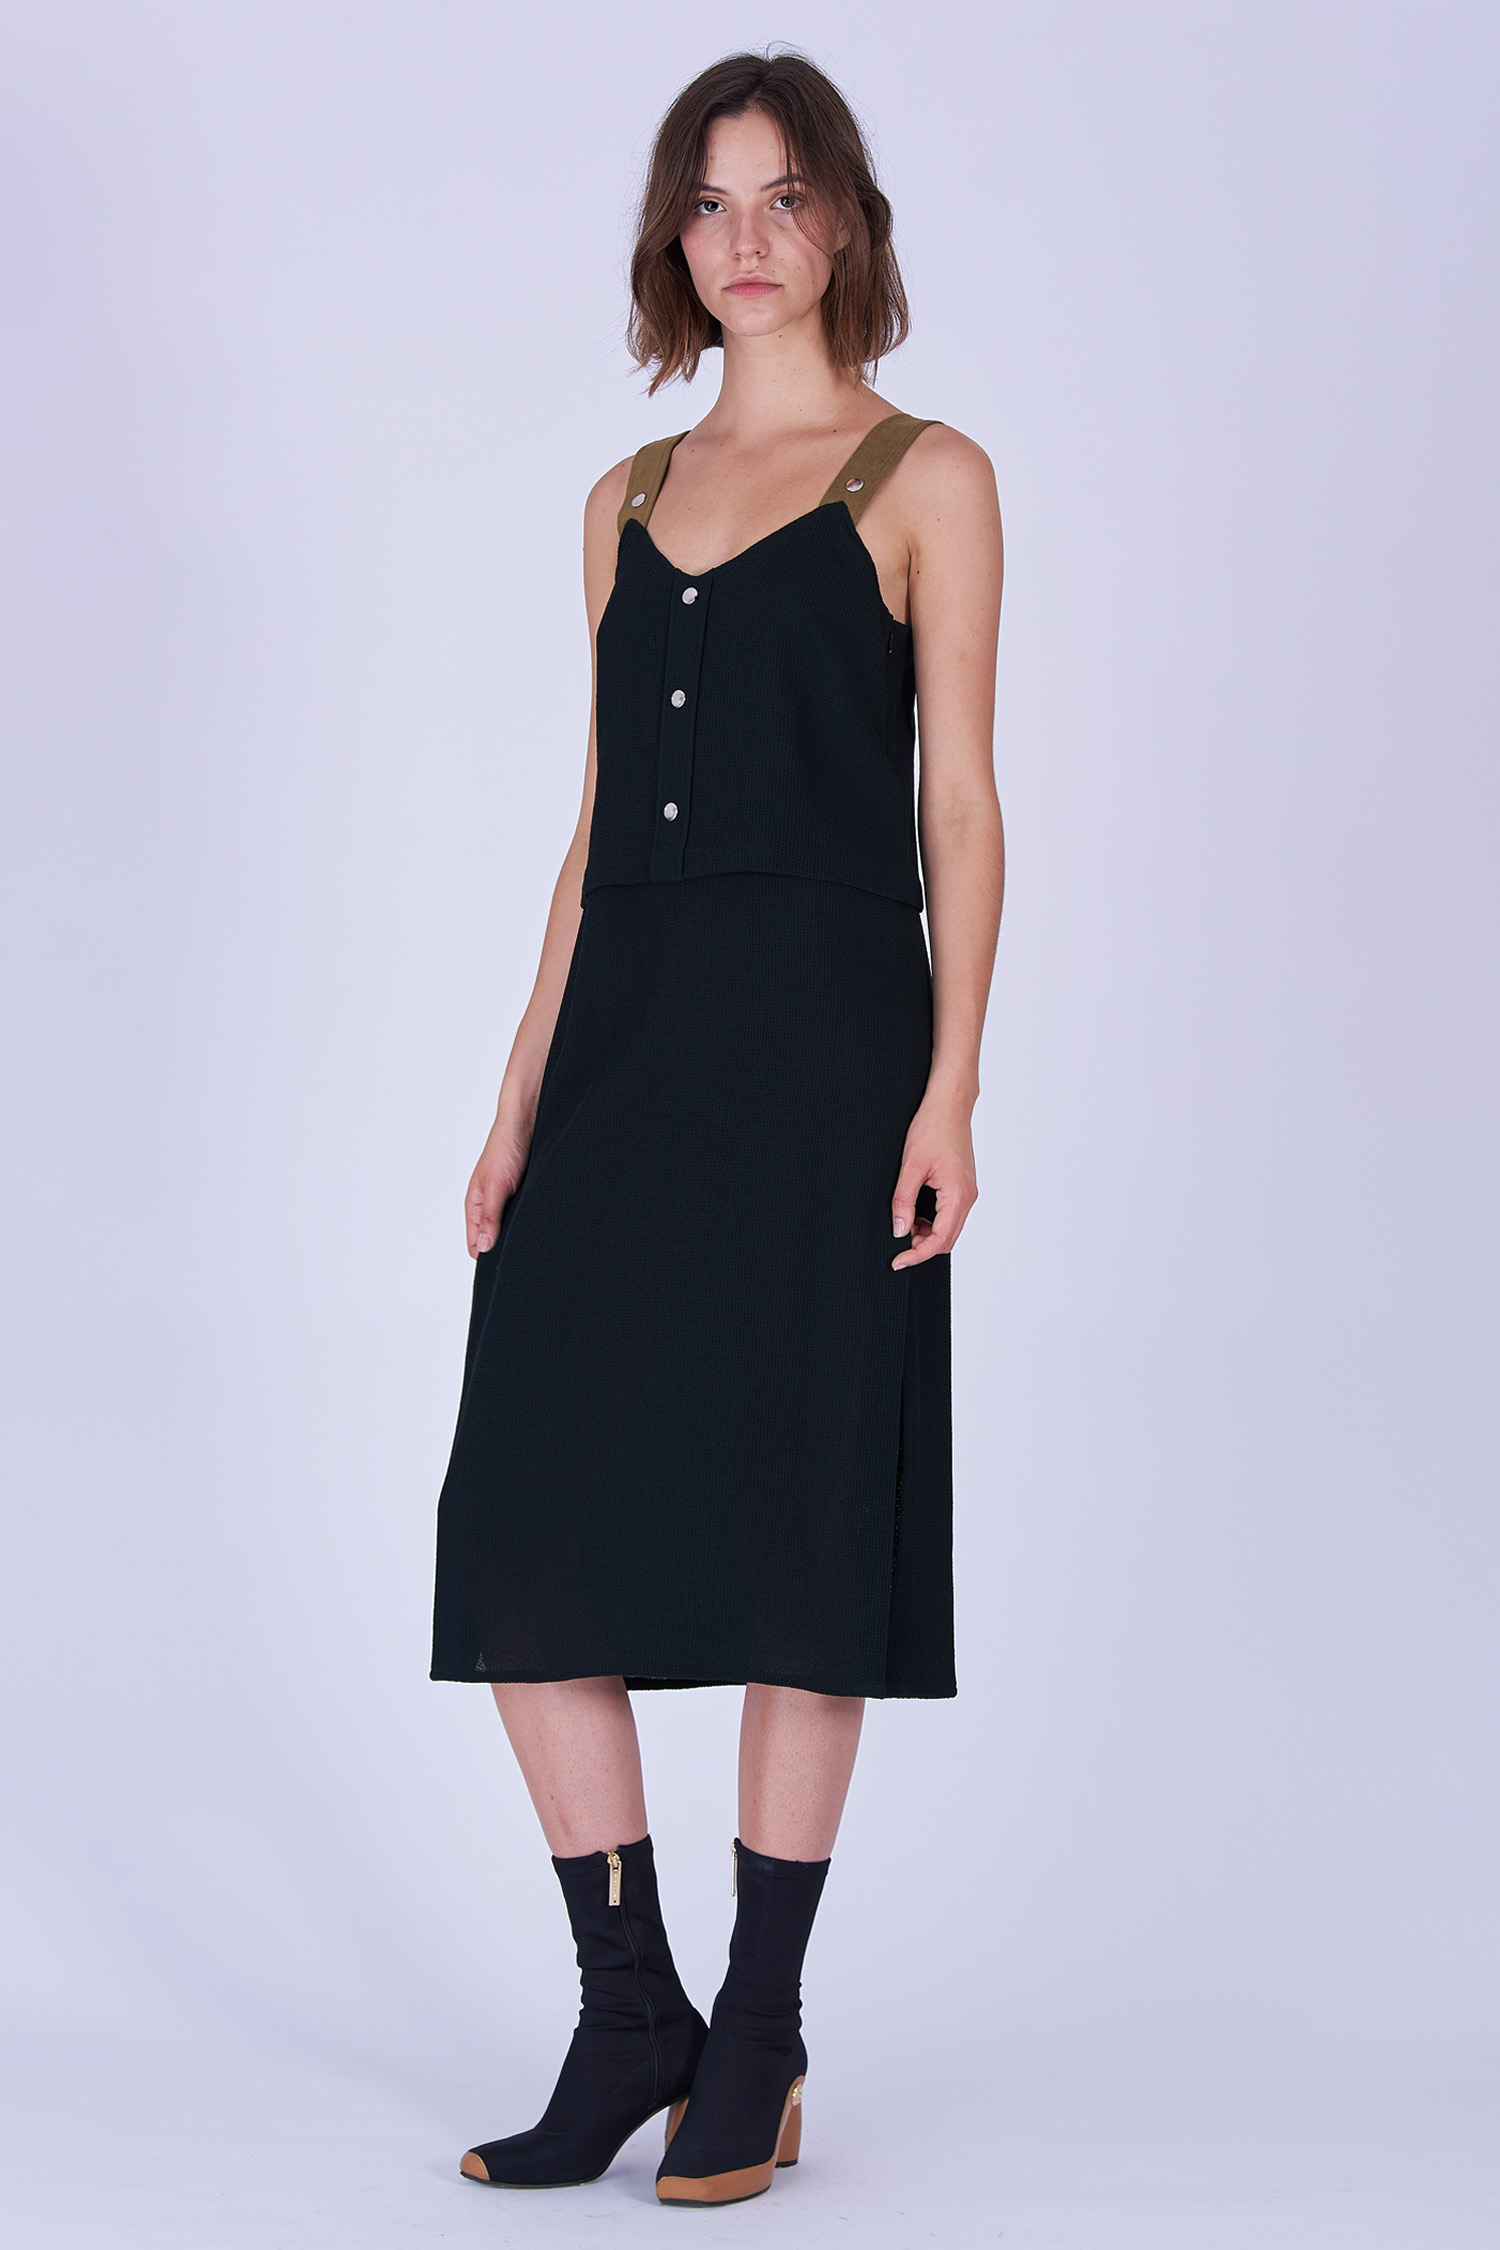 Acephala Fw19 20 Black Strap Midi Dress Czarna Sukienka Szelki Side